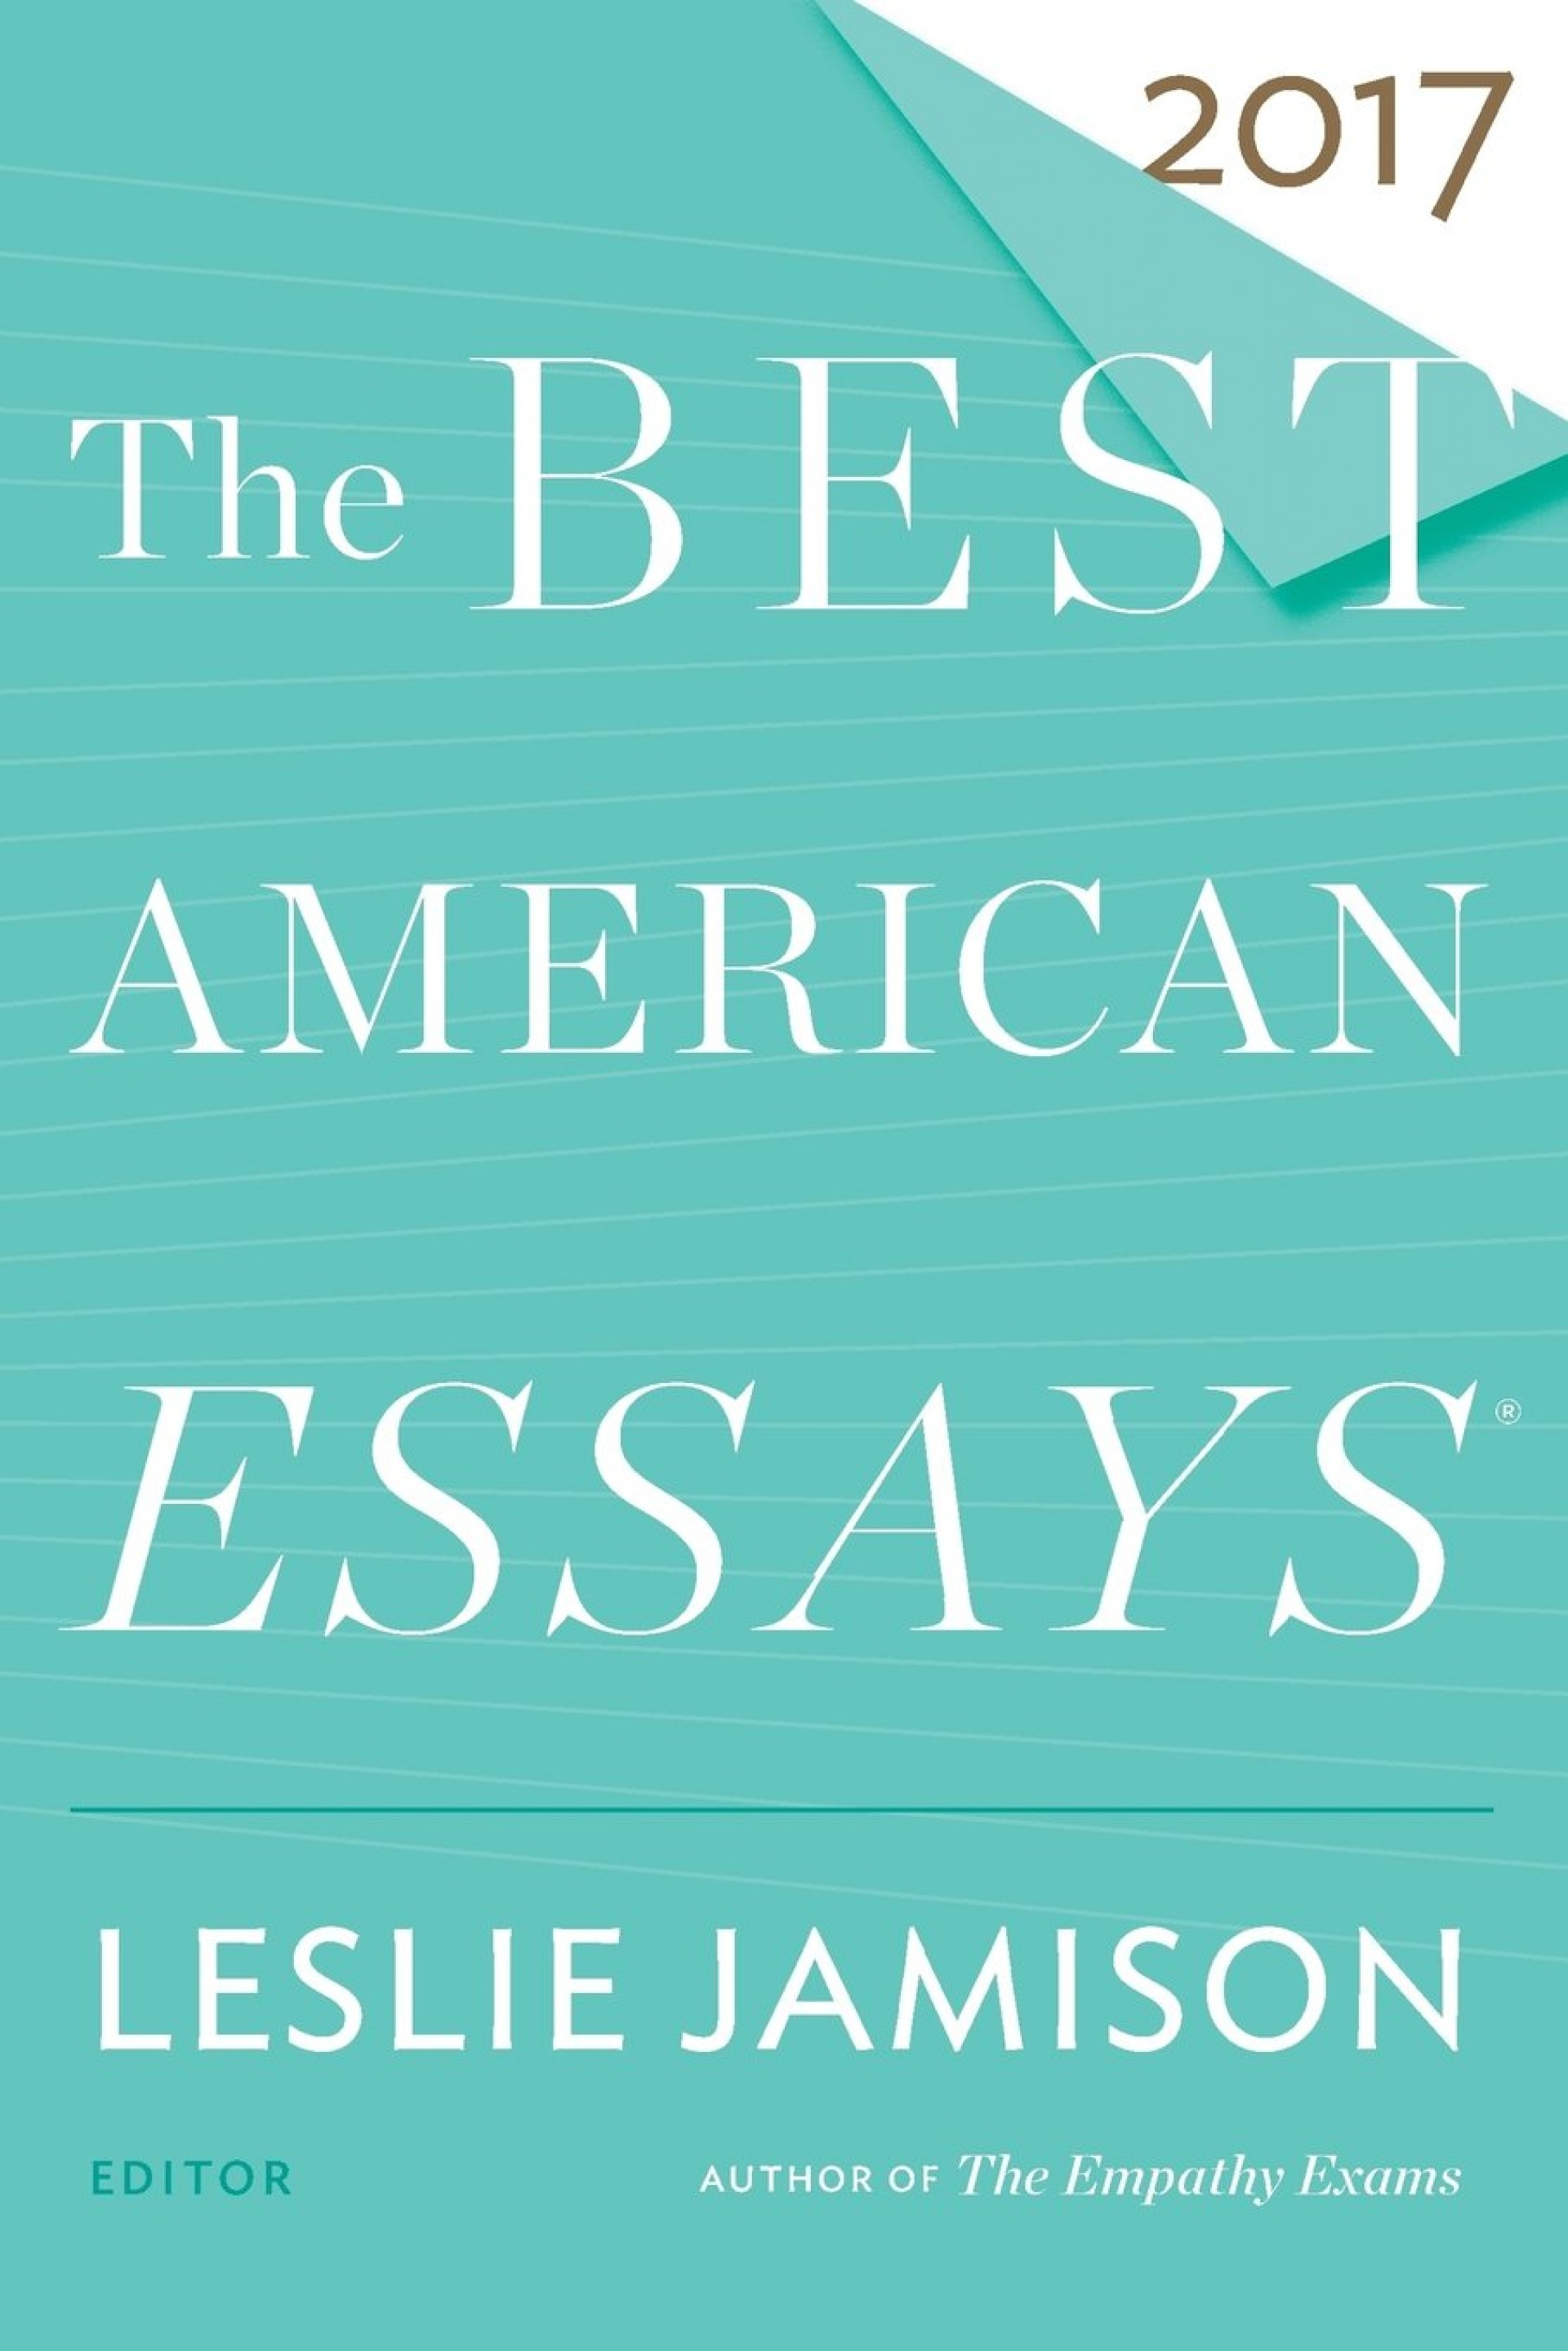 001 61tzl Nruvl Essay Example Best American Striking Essays 2017 Pdf Submissions 2019 Of The Century Table Contents 1920